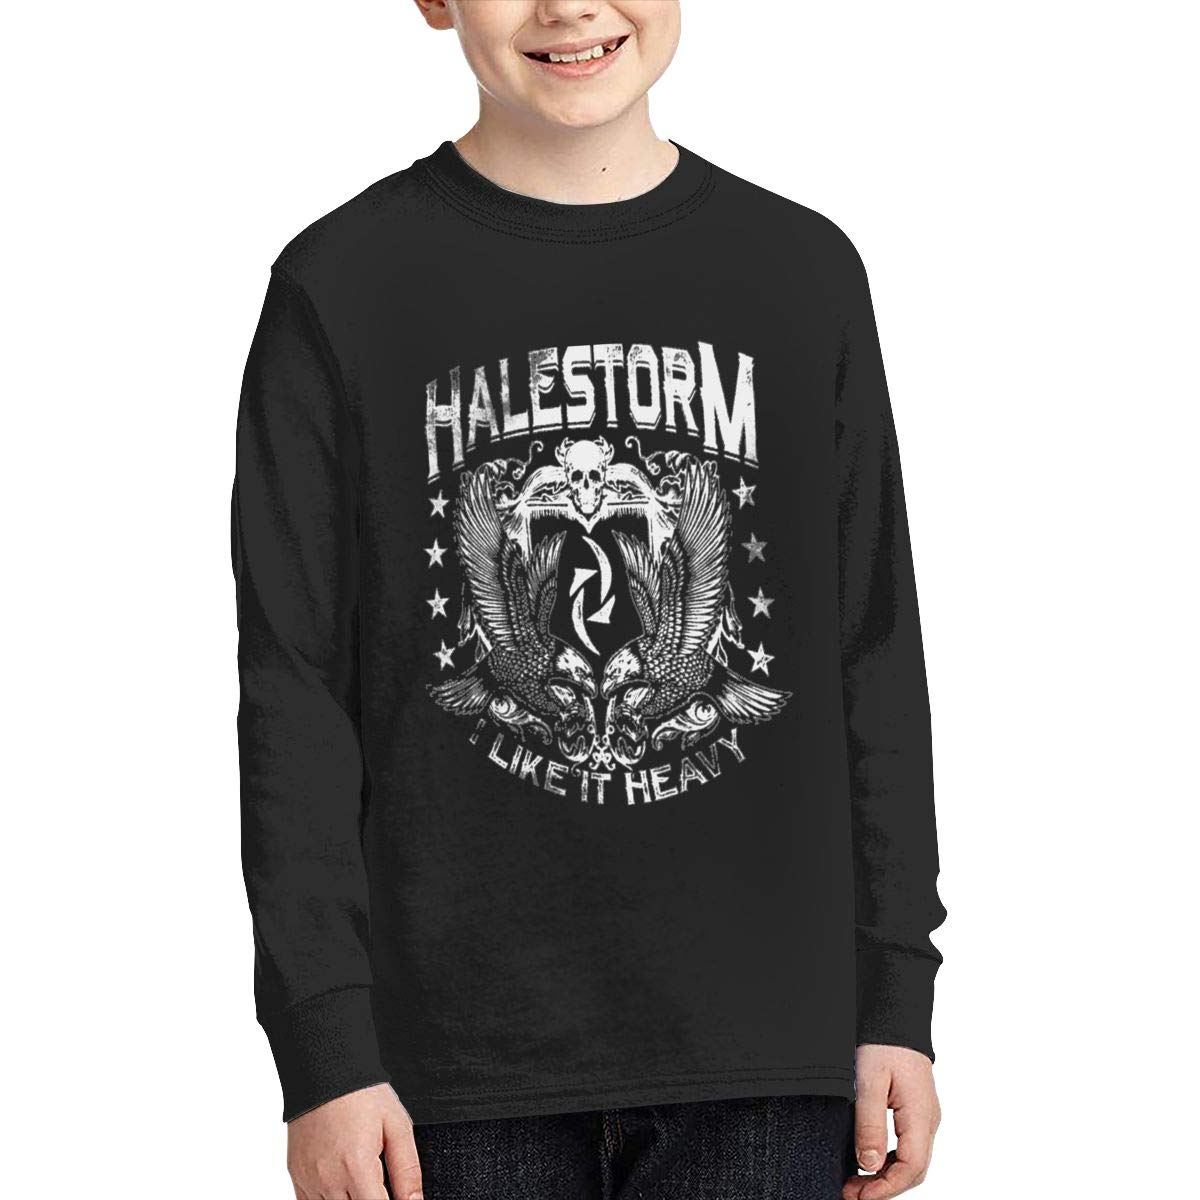 Optumus Halestorm Kids Sweatshirts Long Sleeve T Shirt Boy Girl Children Teenagers Unisex Tee